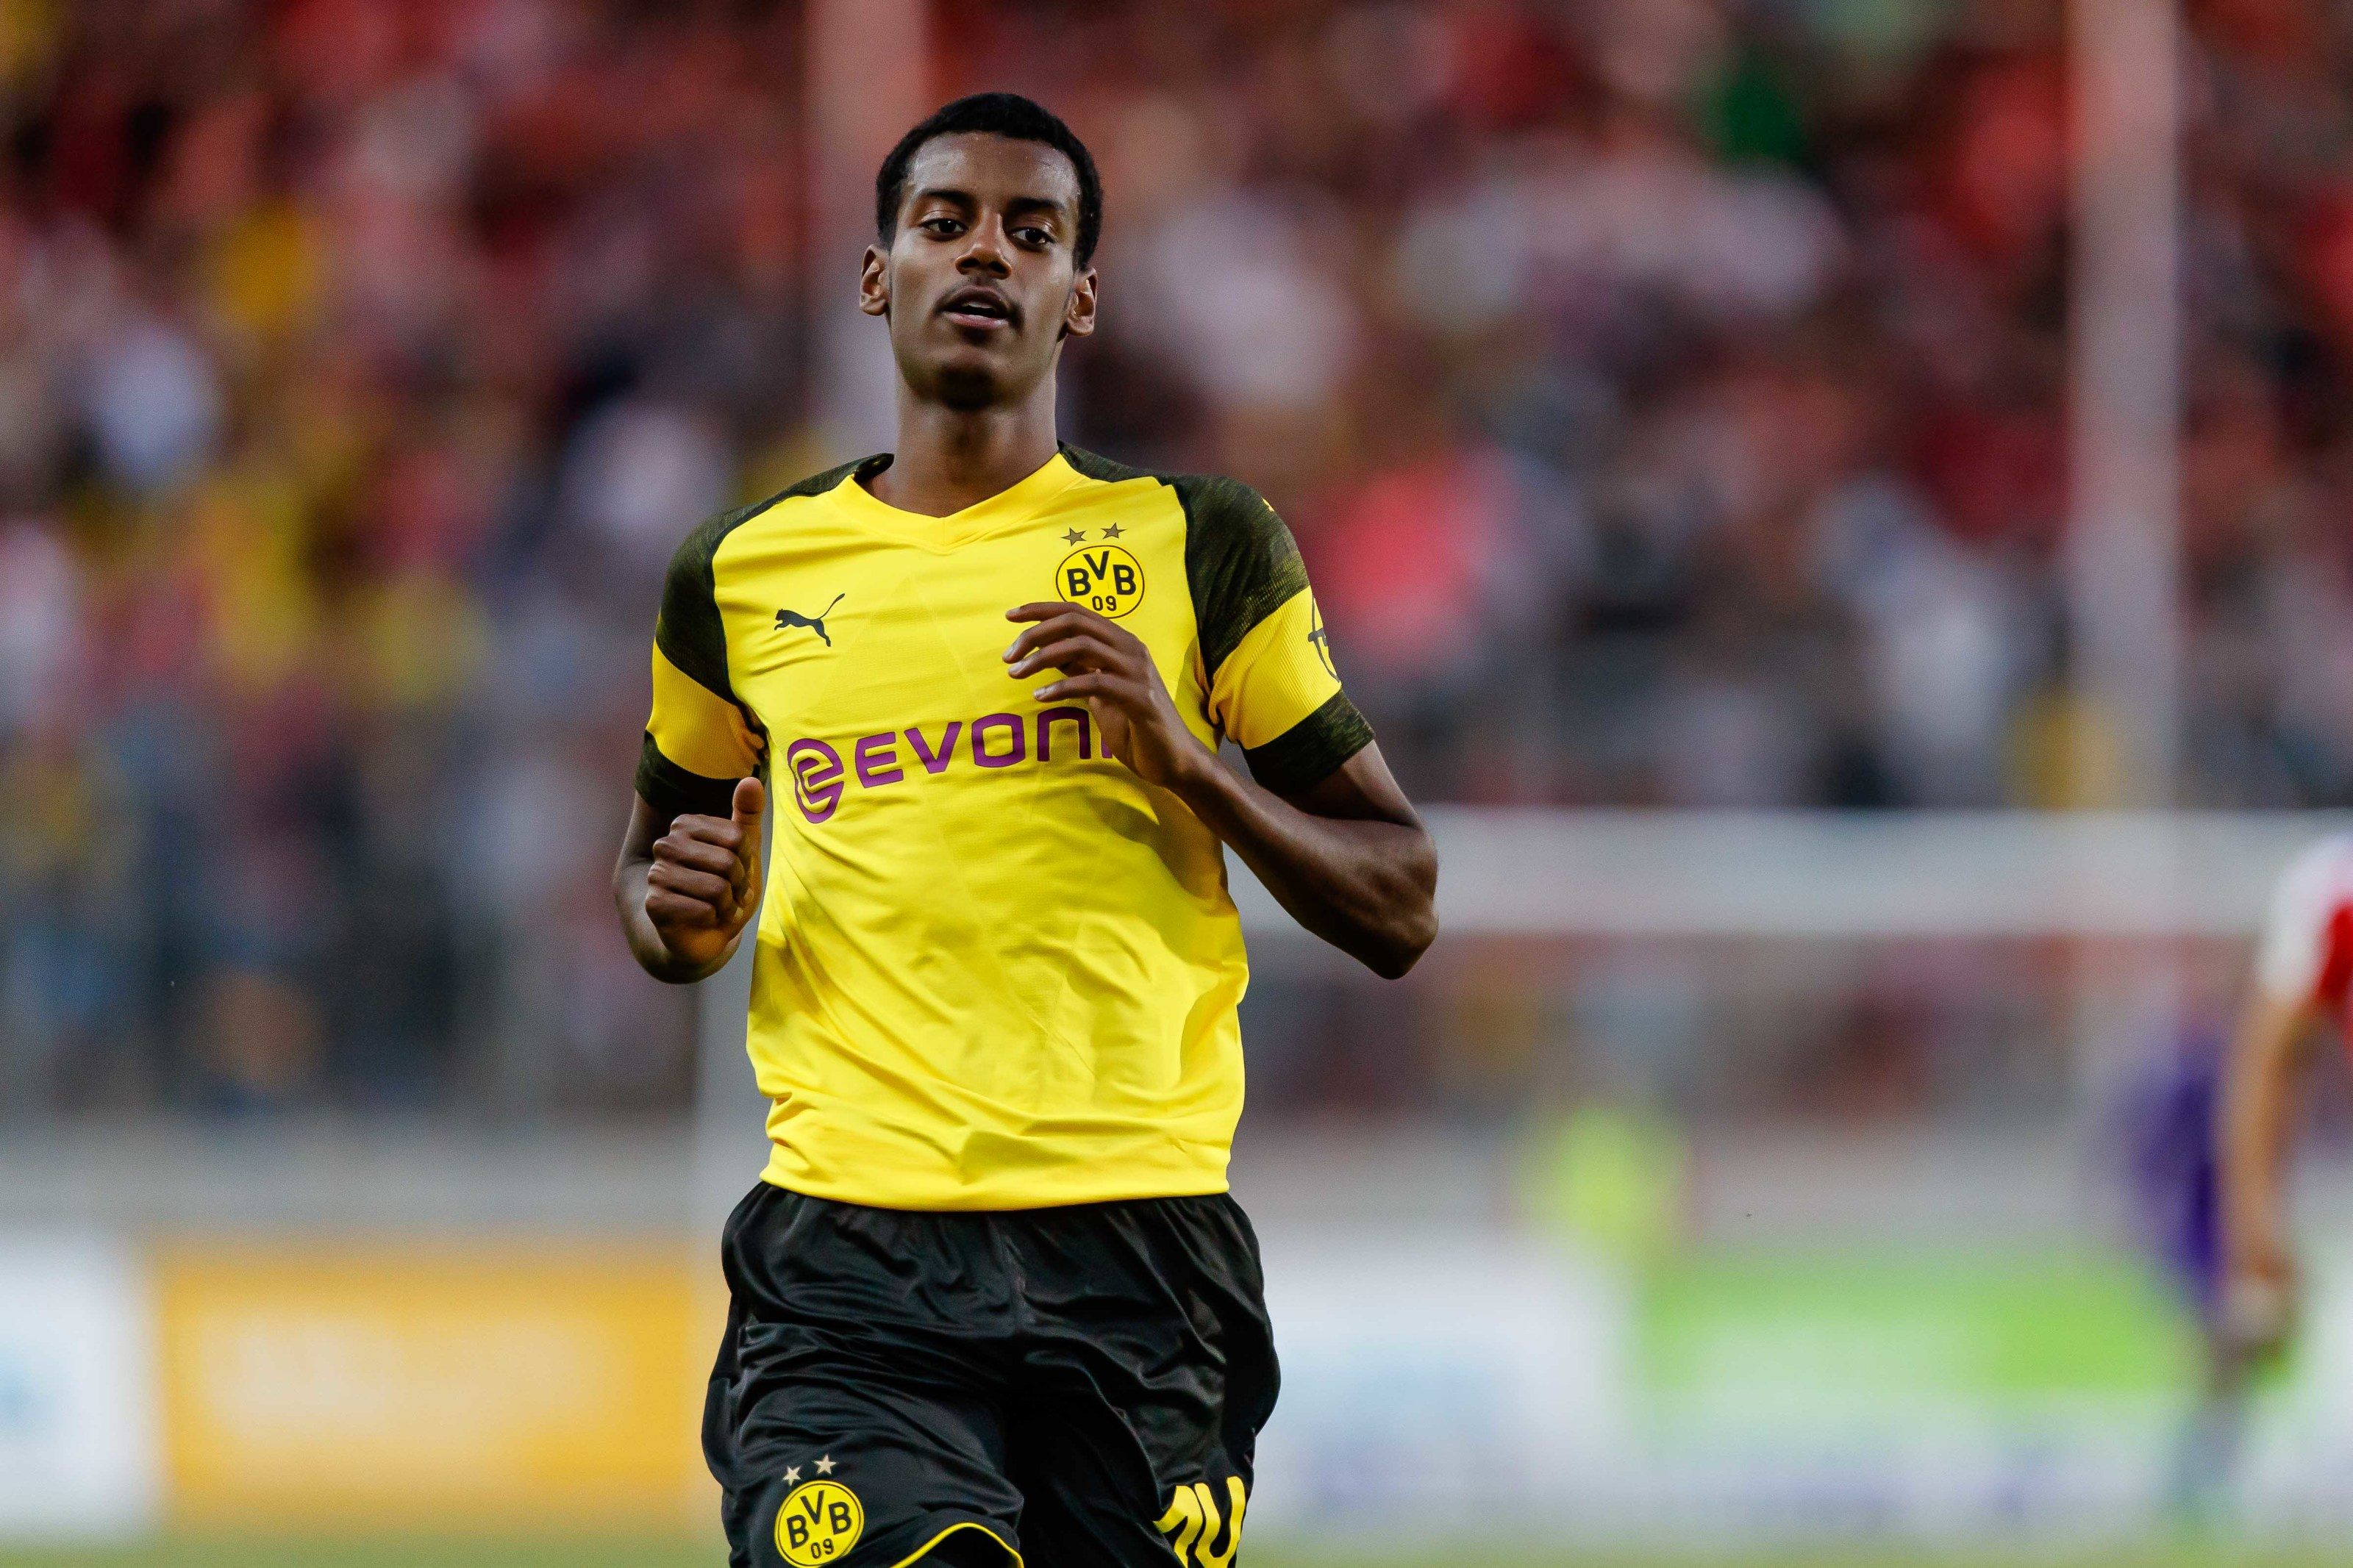 Borussia Dortmund: Alexander Isak- Keep, loan or sell?